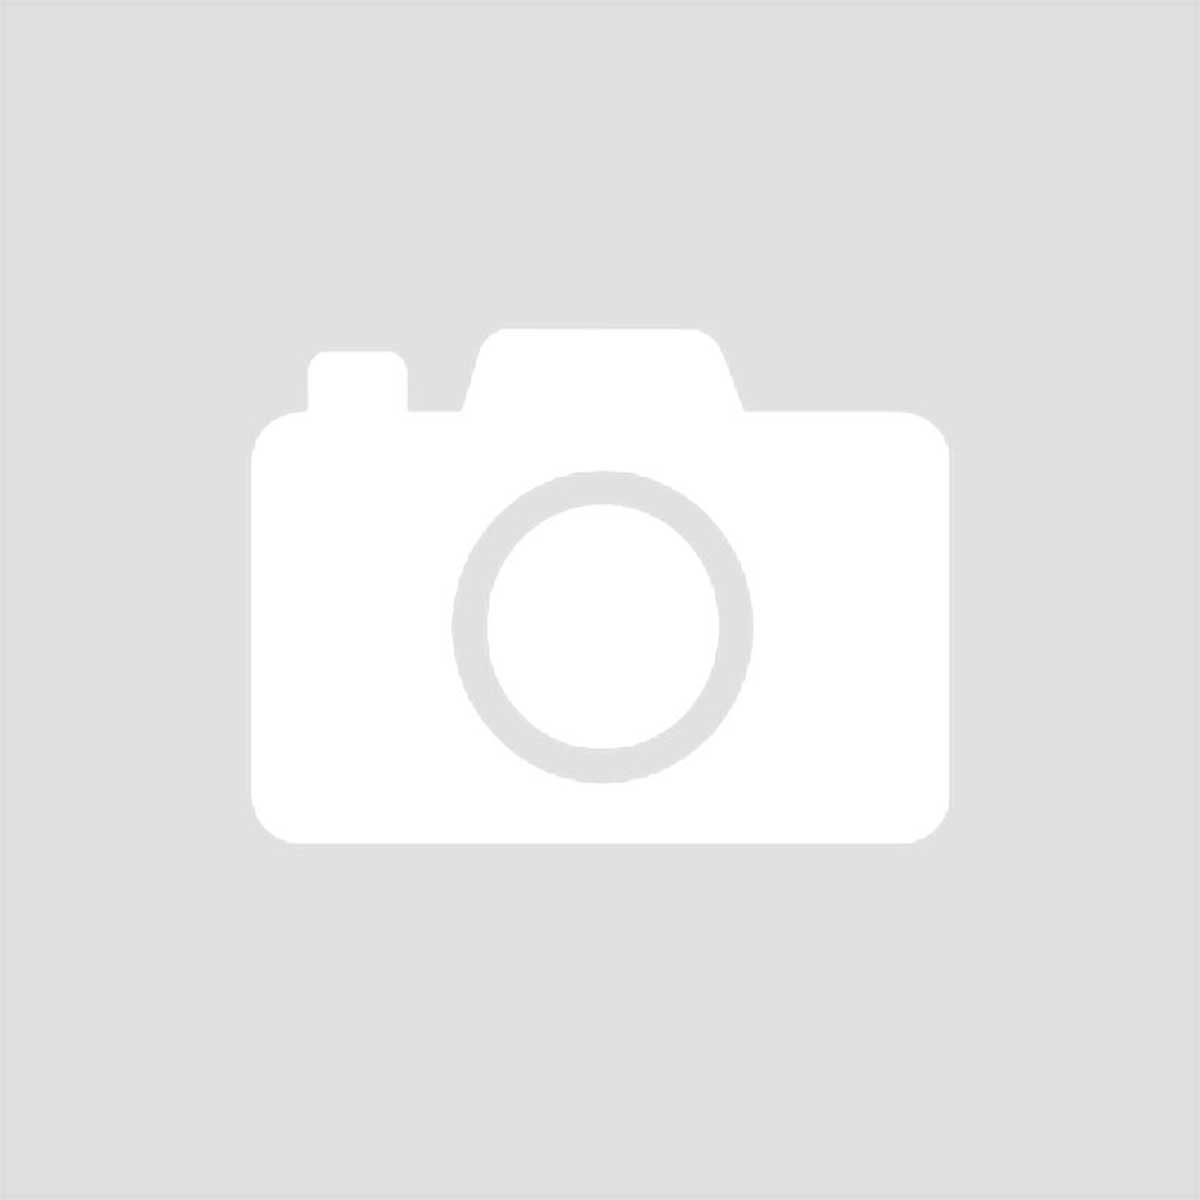 Where to buy Liberon Tung Oil